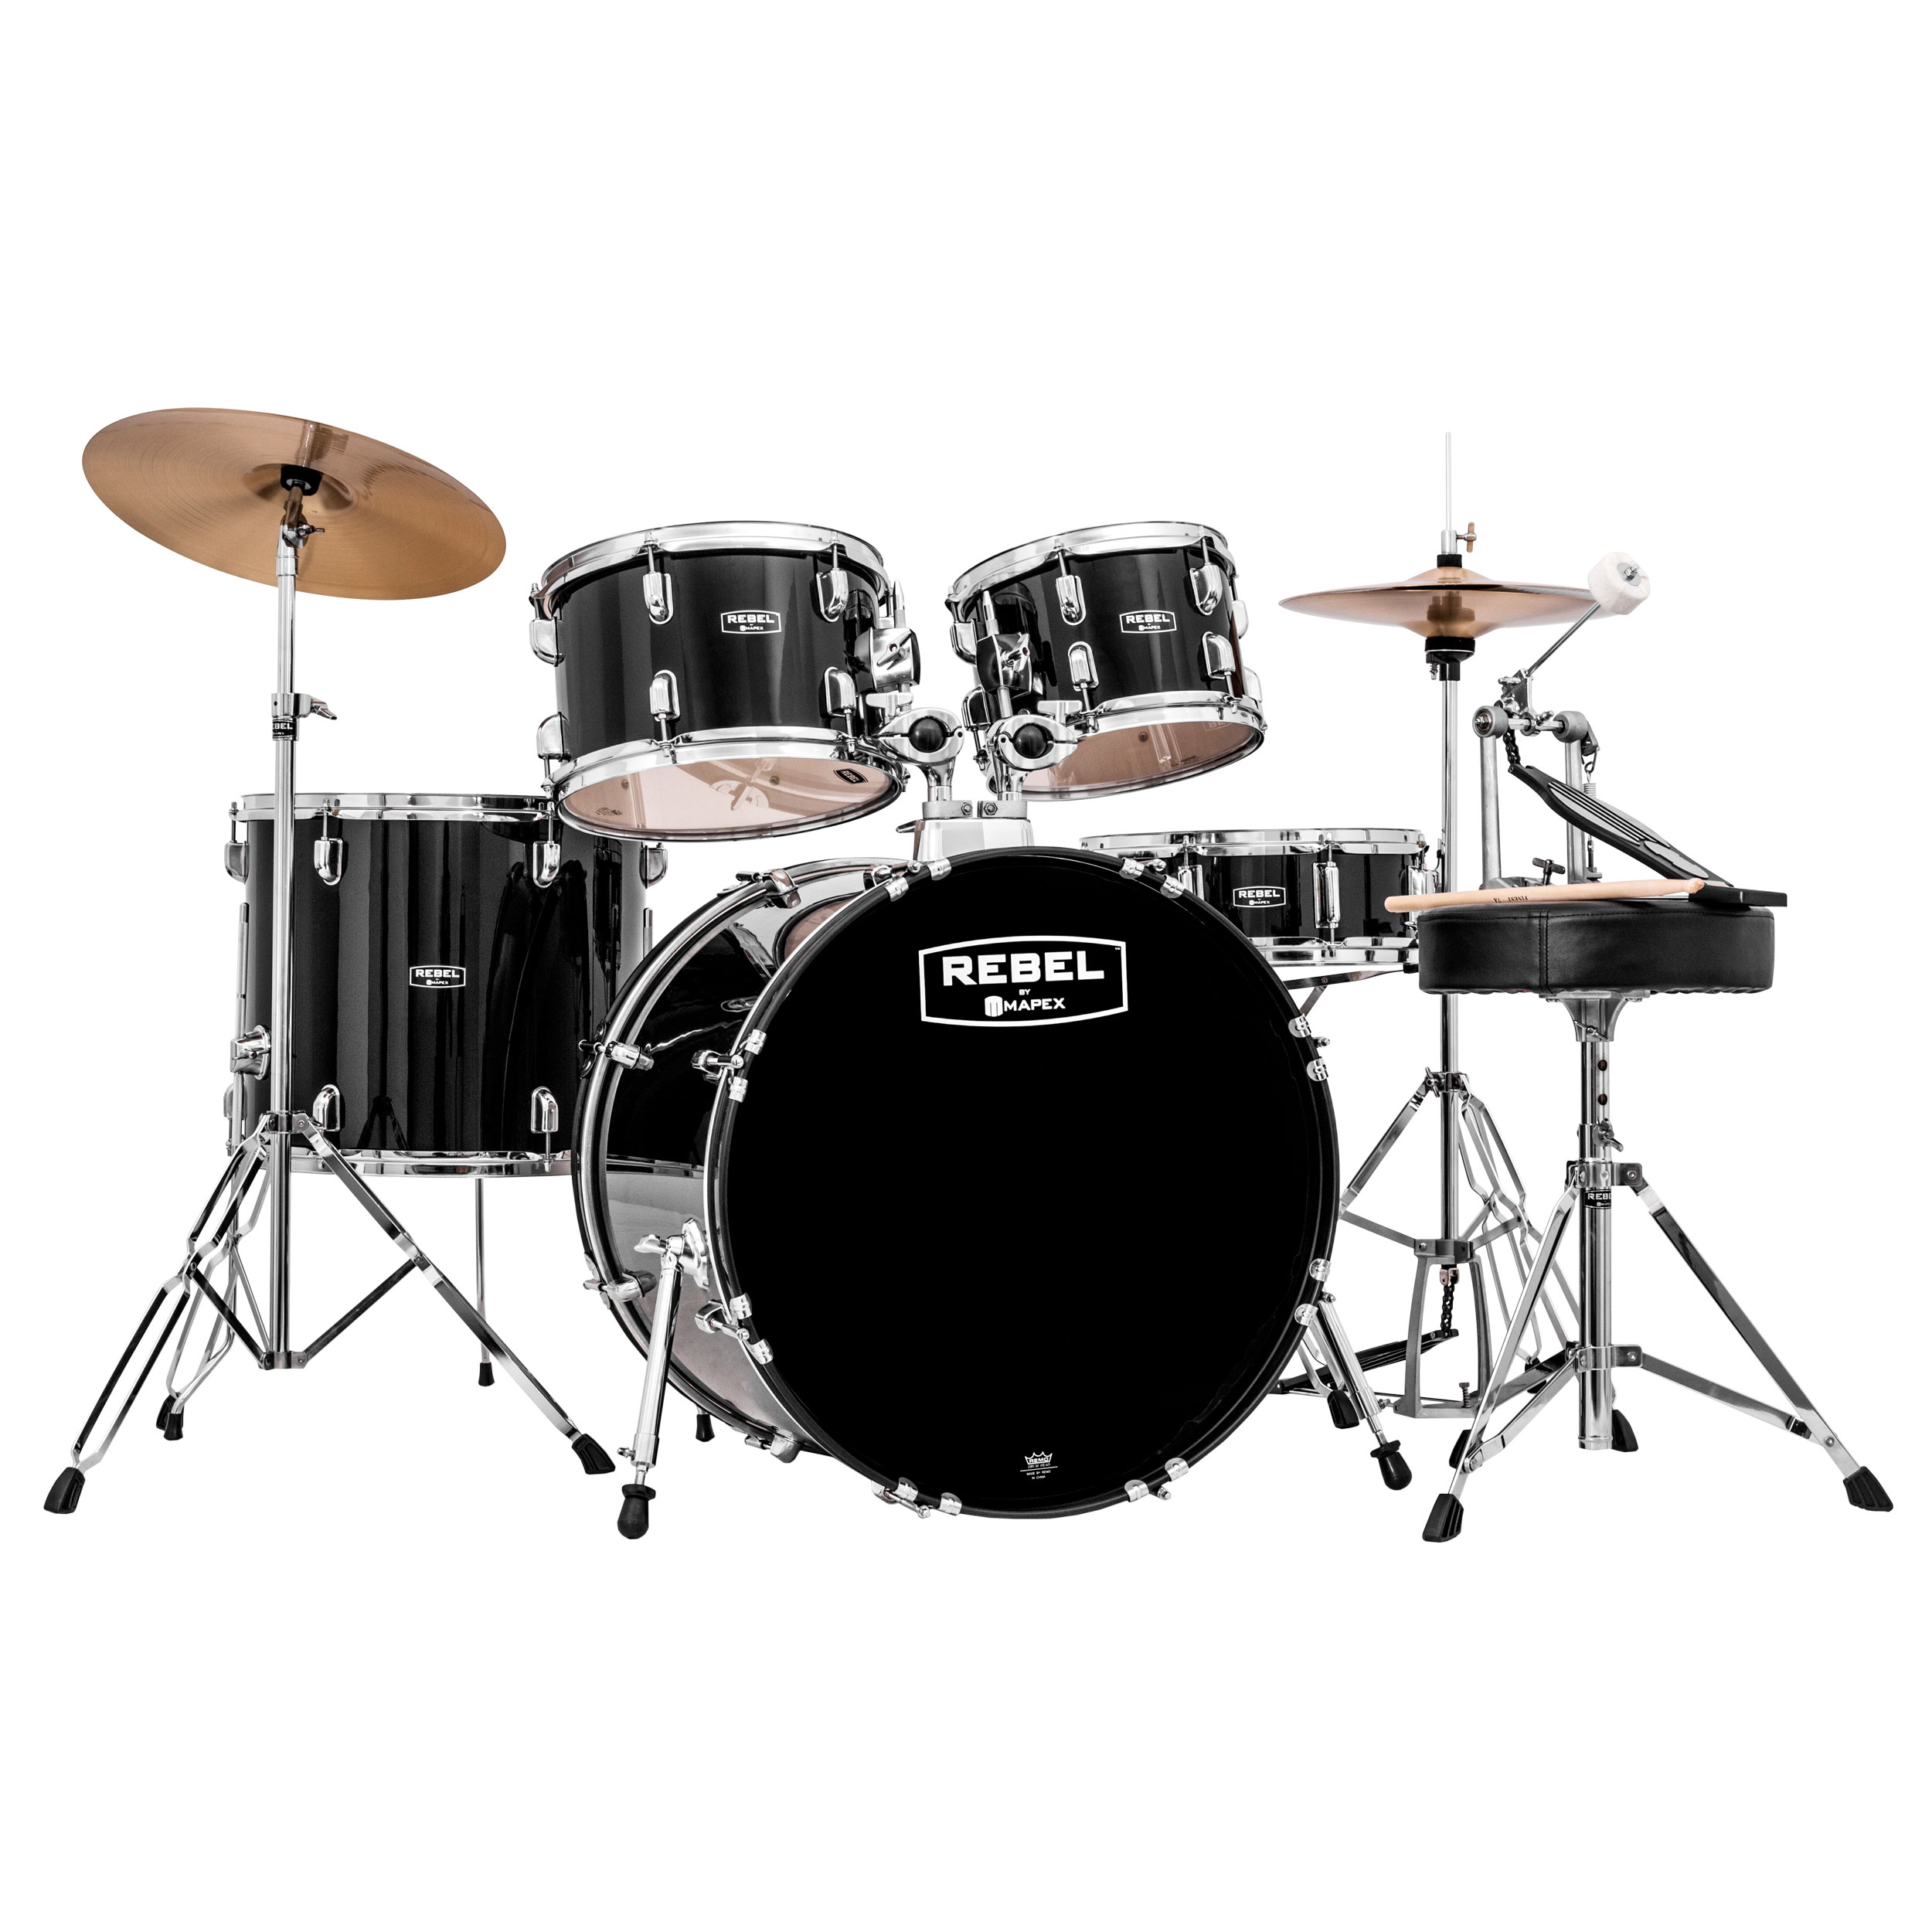 "Mapex Rebel 5-Piece Drum Set (22"" Bass, 10/12/16"" Toms, 14"" Snare) with Hardware and Cymbals"